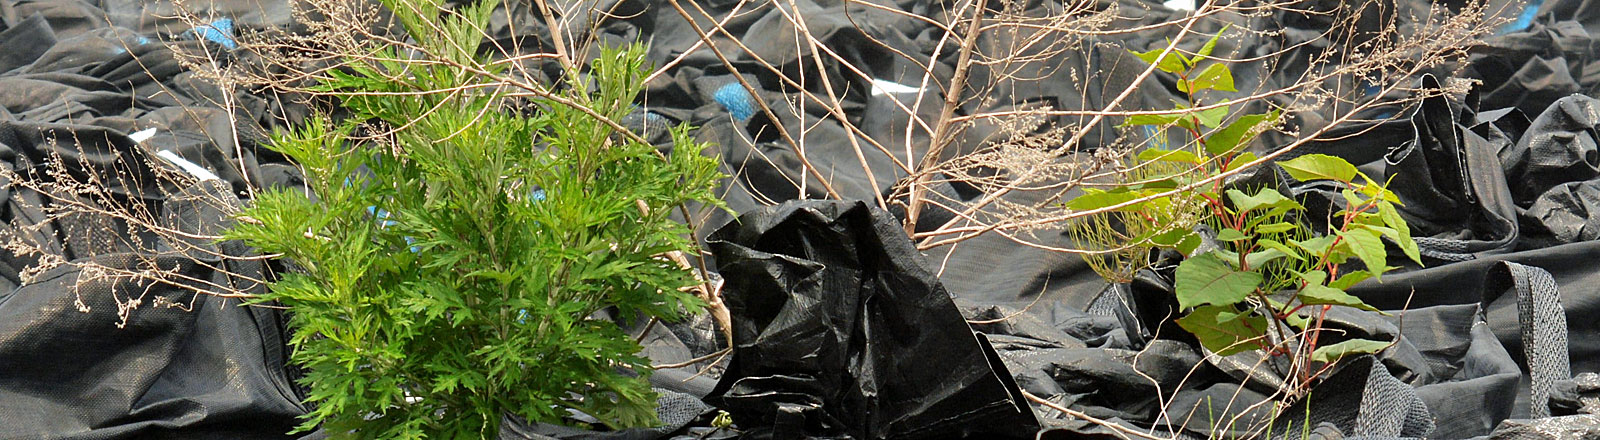 Weeds grow from ruptured bags of waste with low concentration-levels of radioactive substances in May 2015 in Fukushima